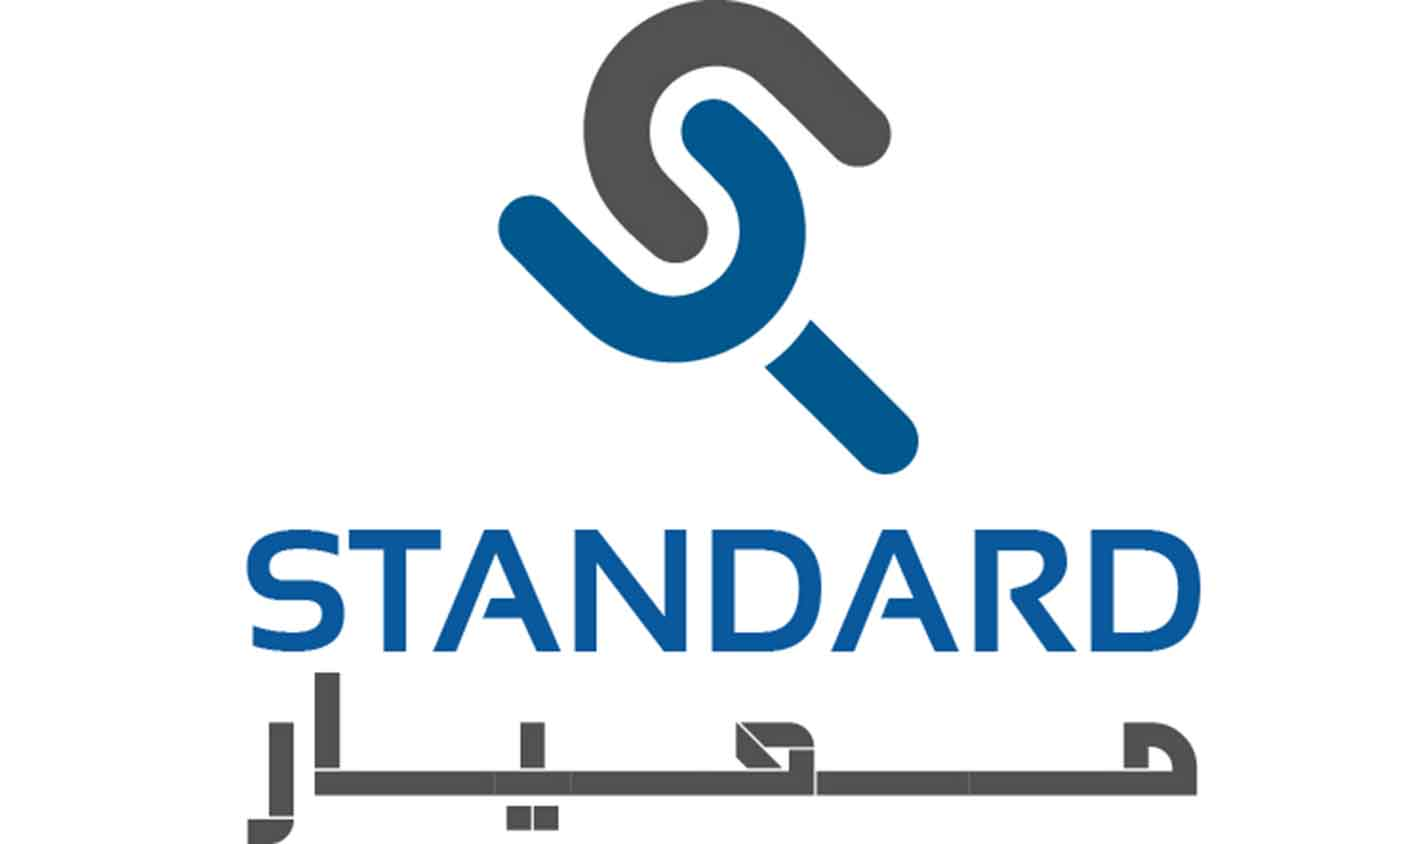 Standard Arabia Inspection Co Ltd